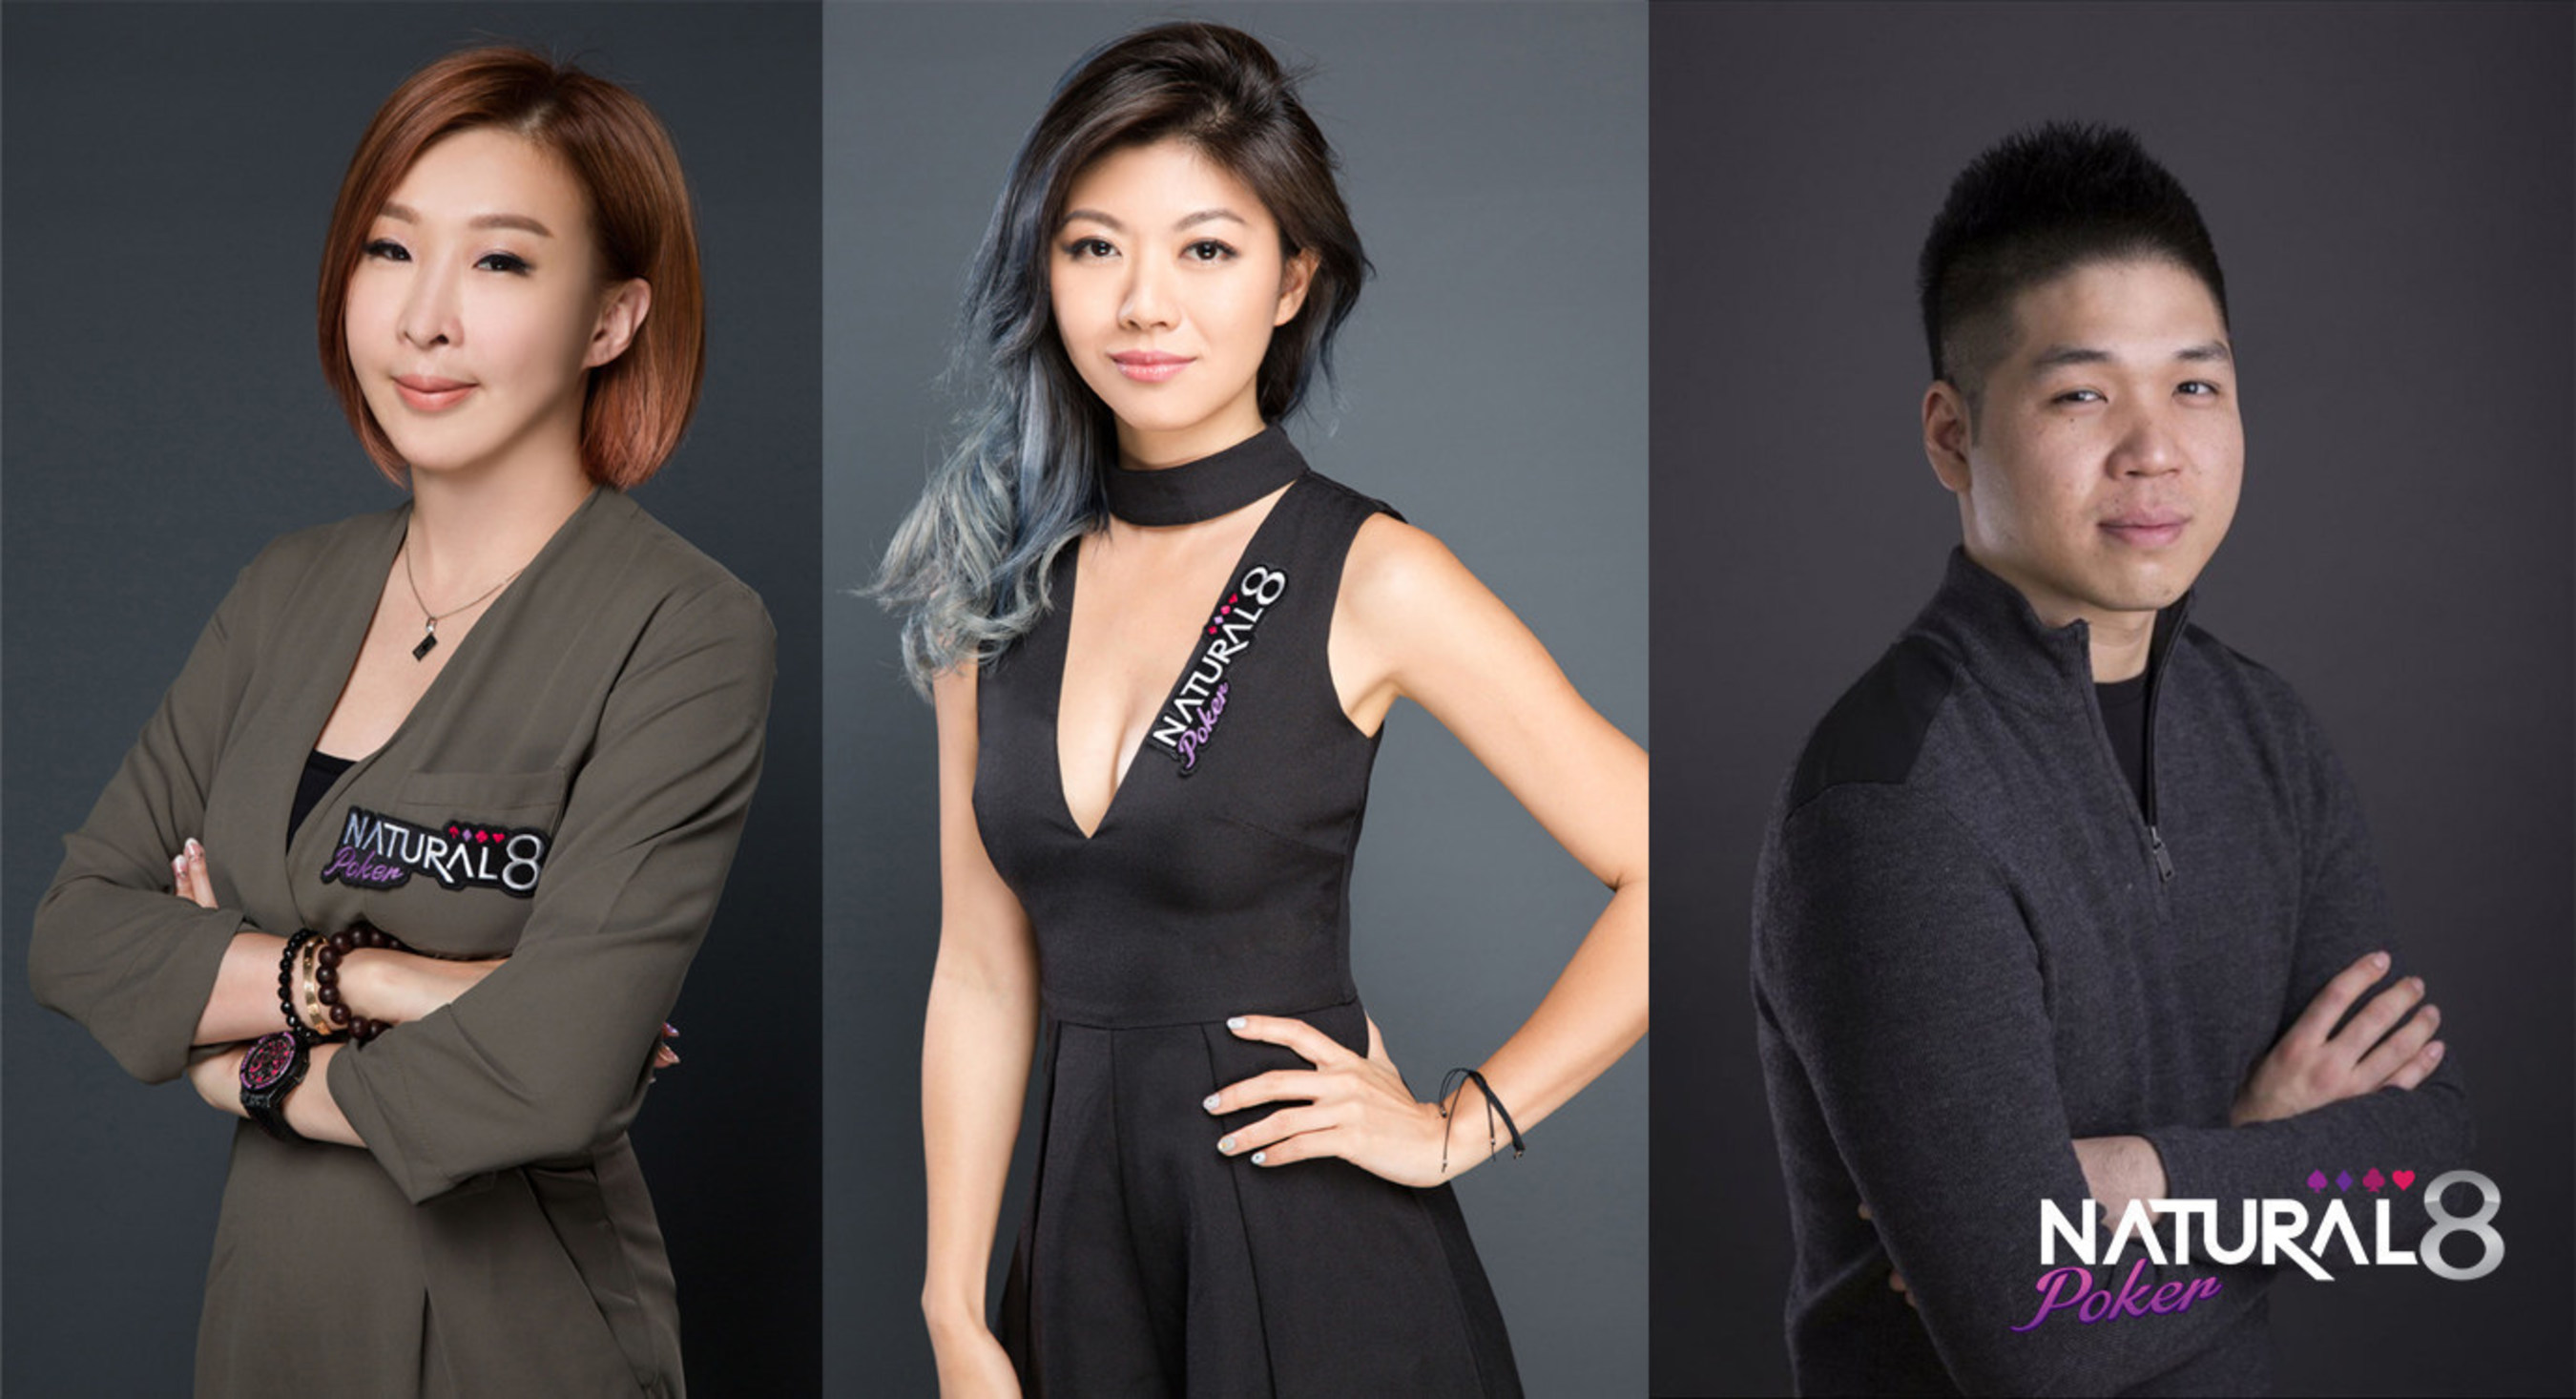 Team Hot comprises of team leader Kitty Kuo, Xuan Liu and Dong Kim